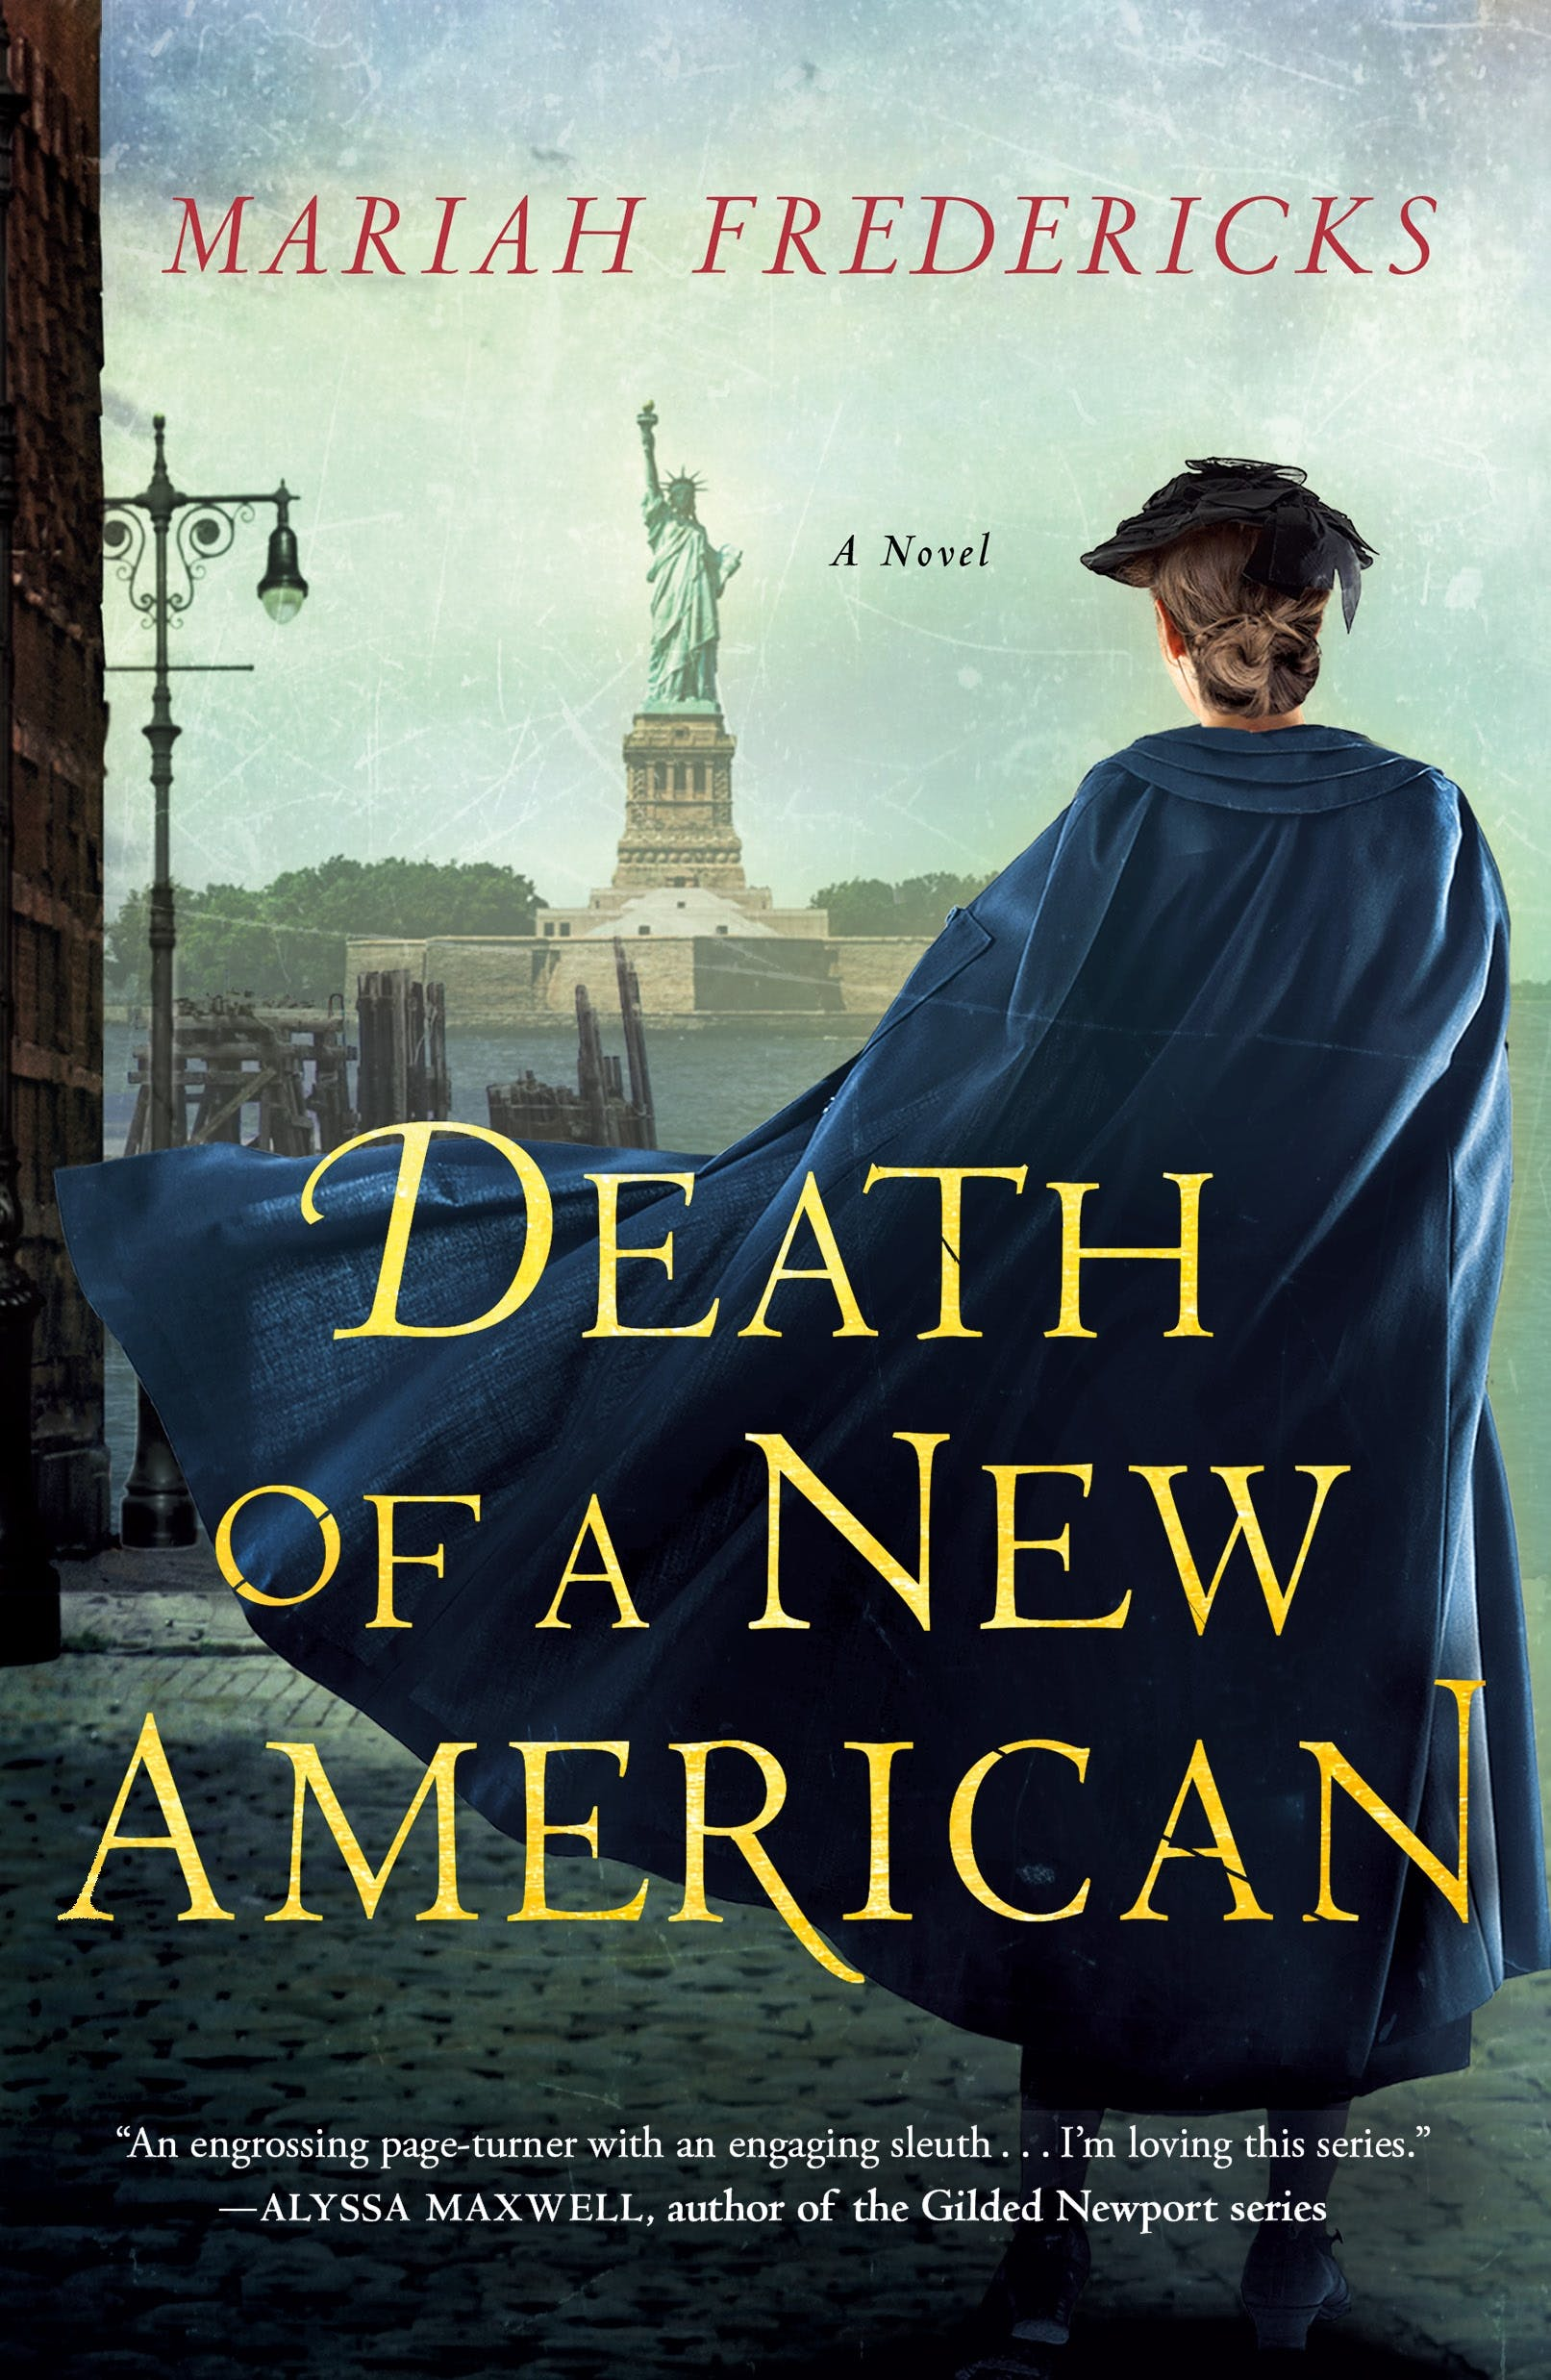 Image of Death of a New American